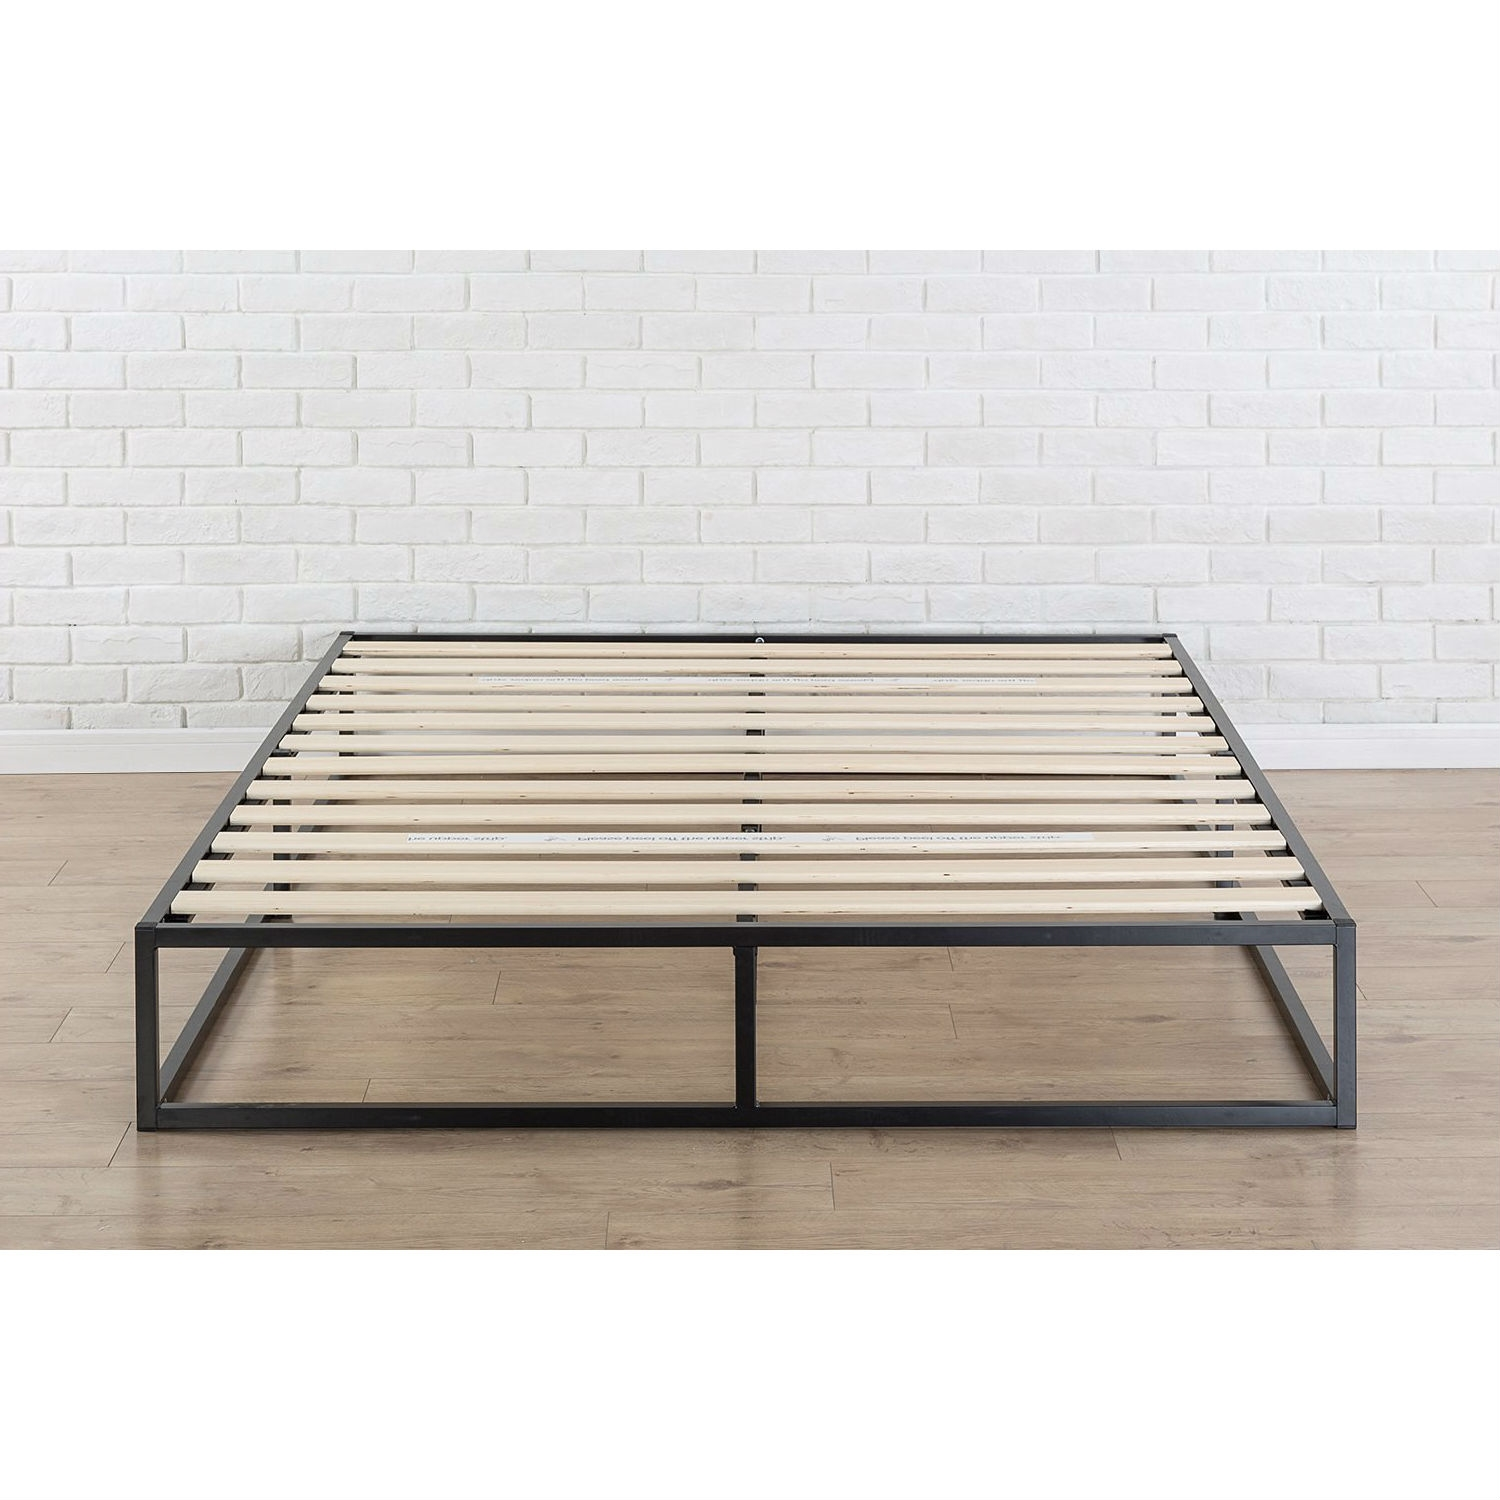 bed slat metal platform brands classic frame wood and queen slats size europa hayneedle